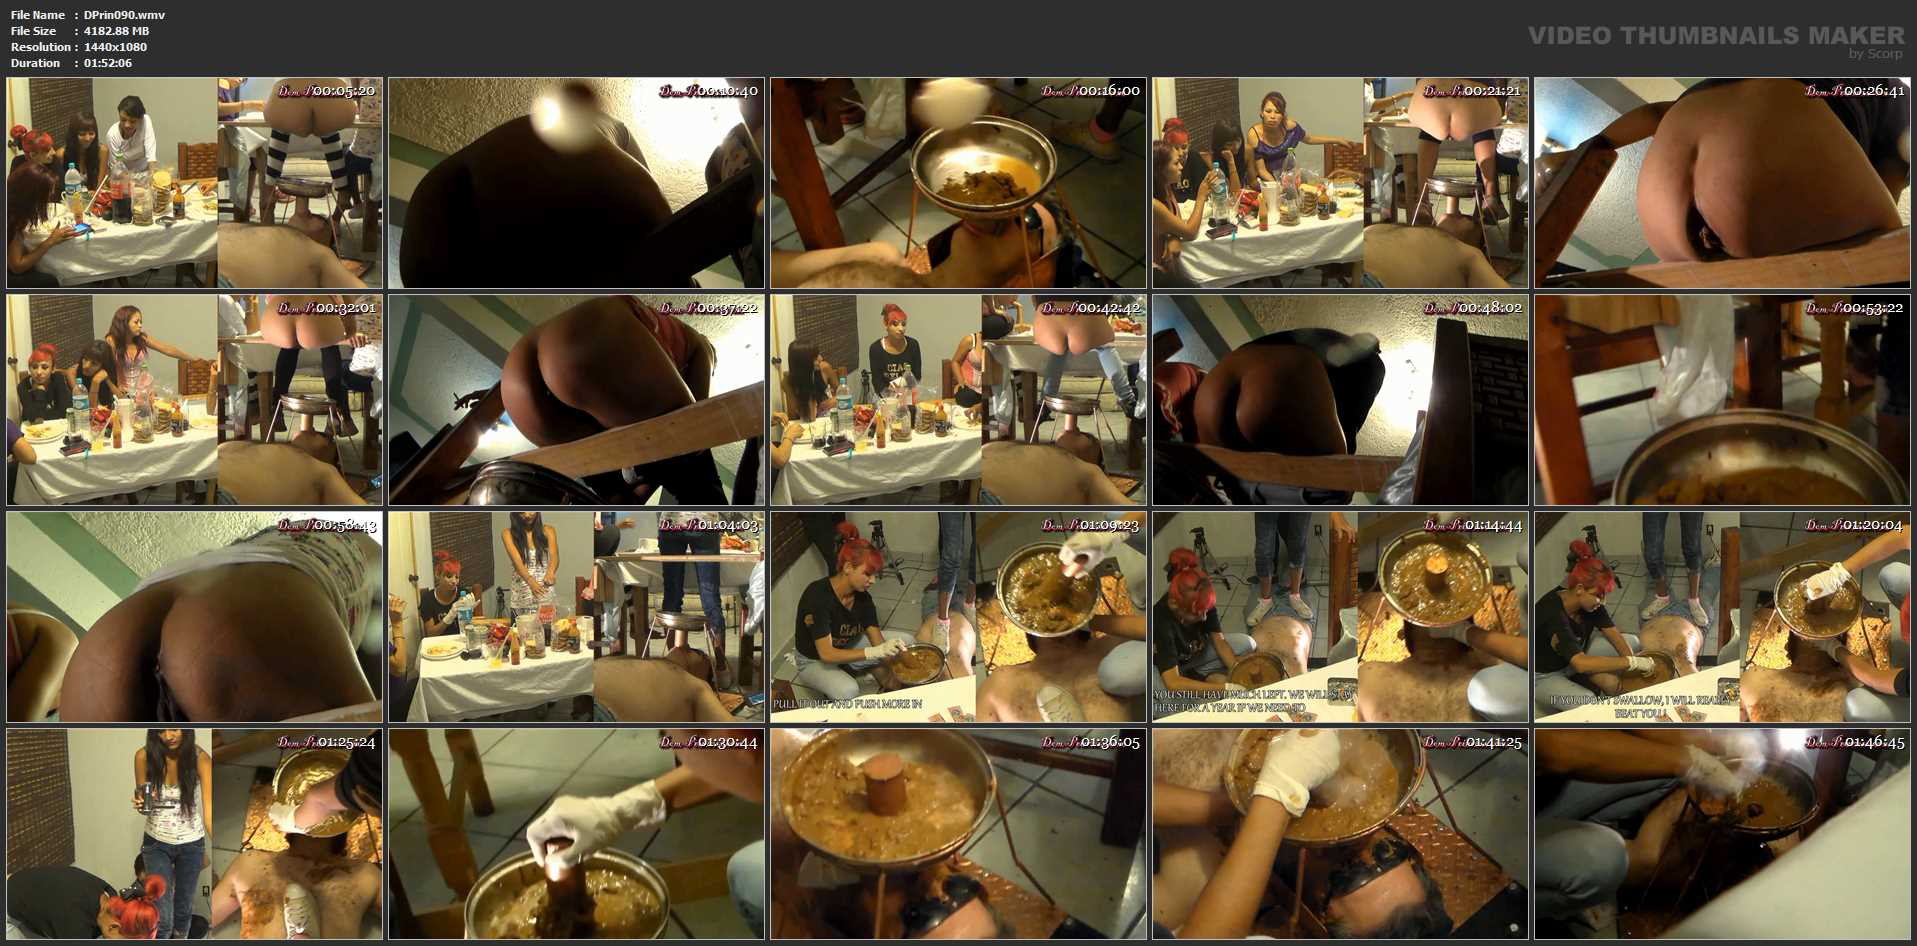 [DOM-PRINCESS] Toilet Mouth High Pressure System II [FULL HD][1080p][WMV]